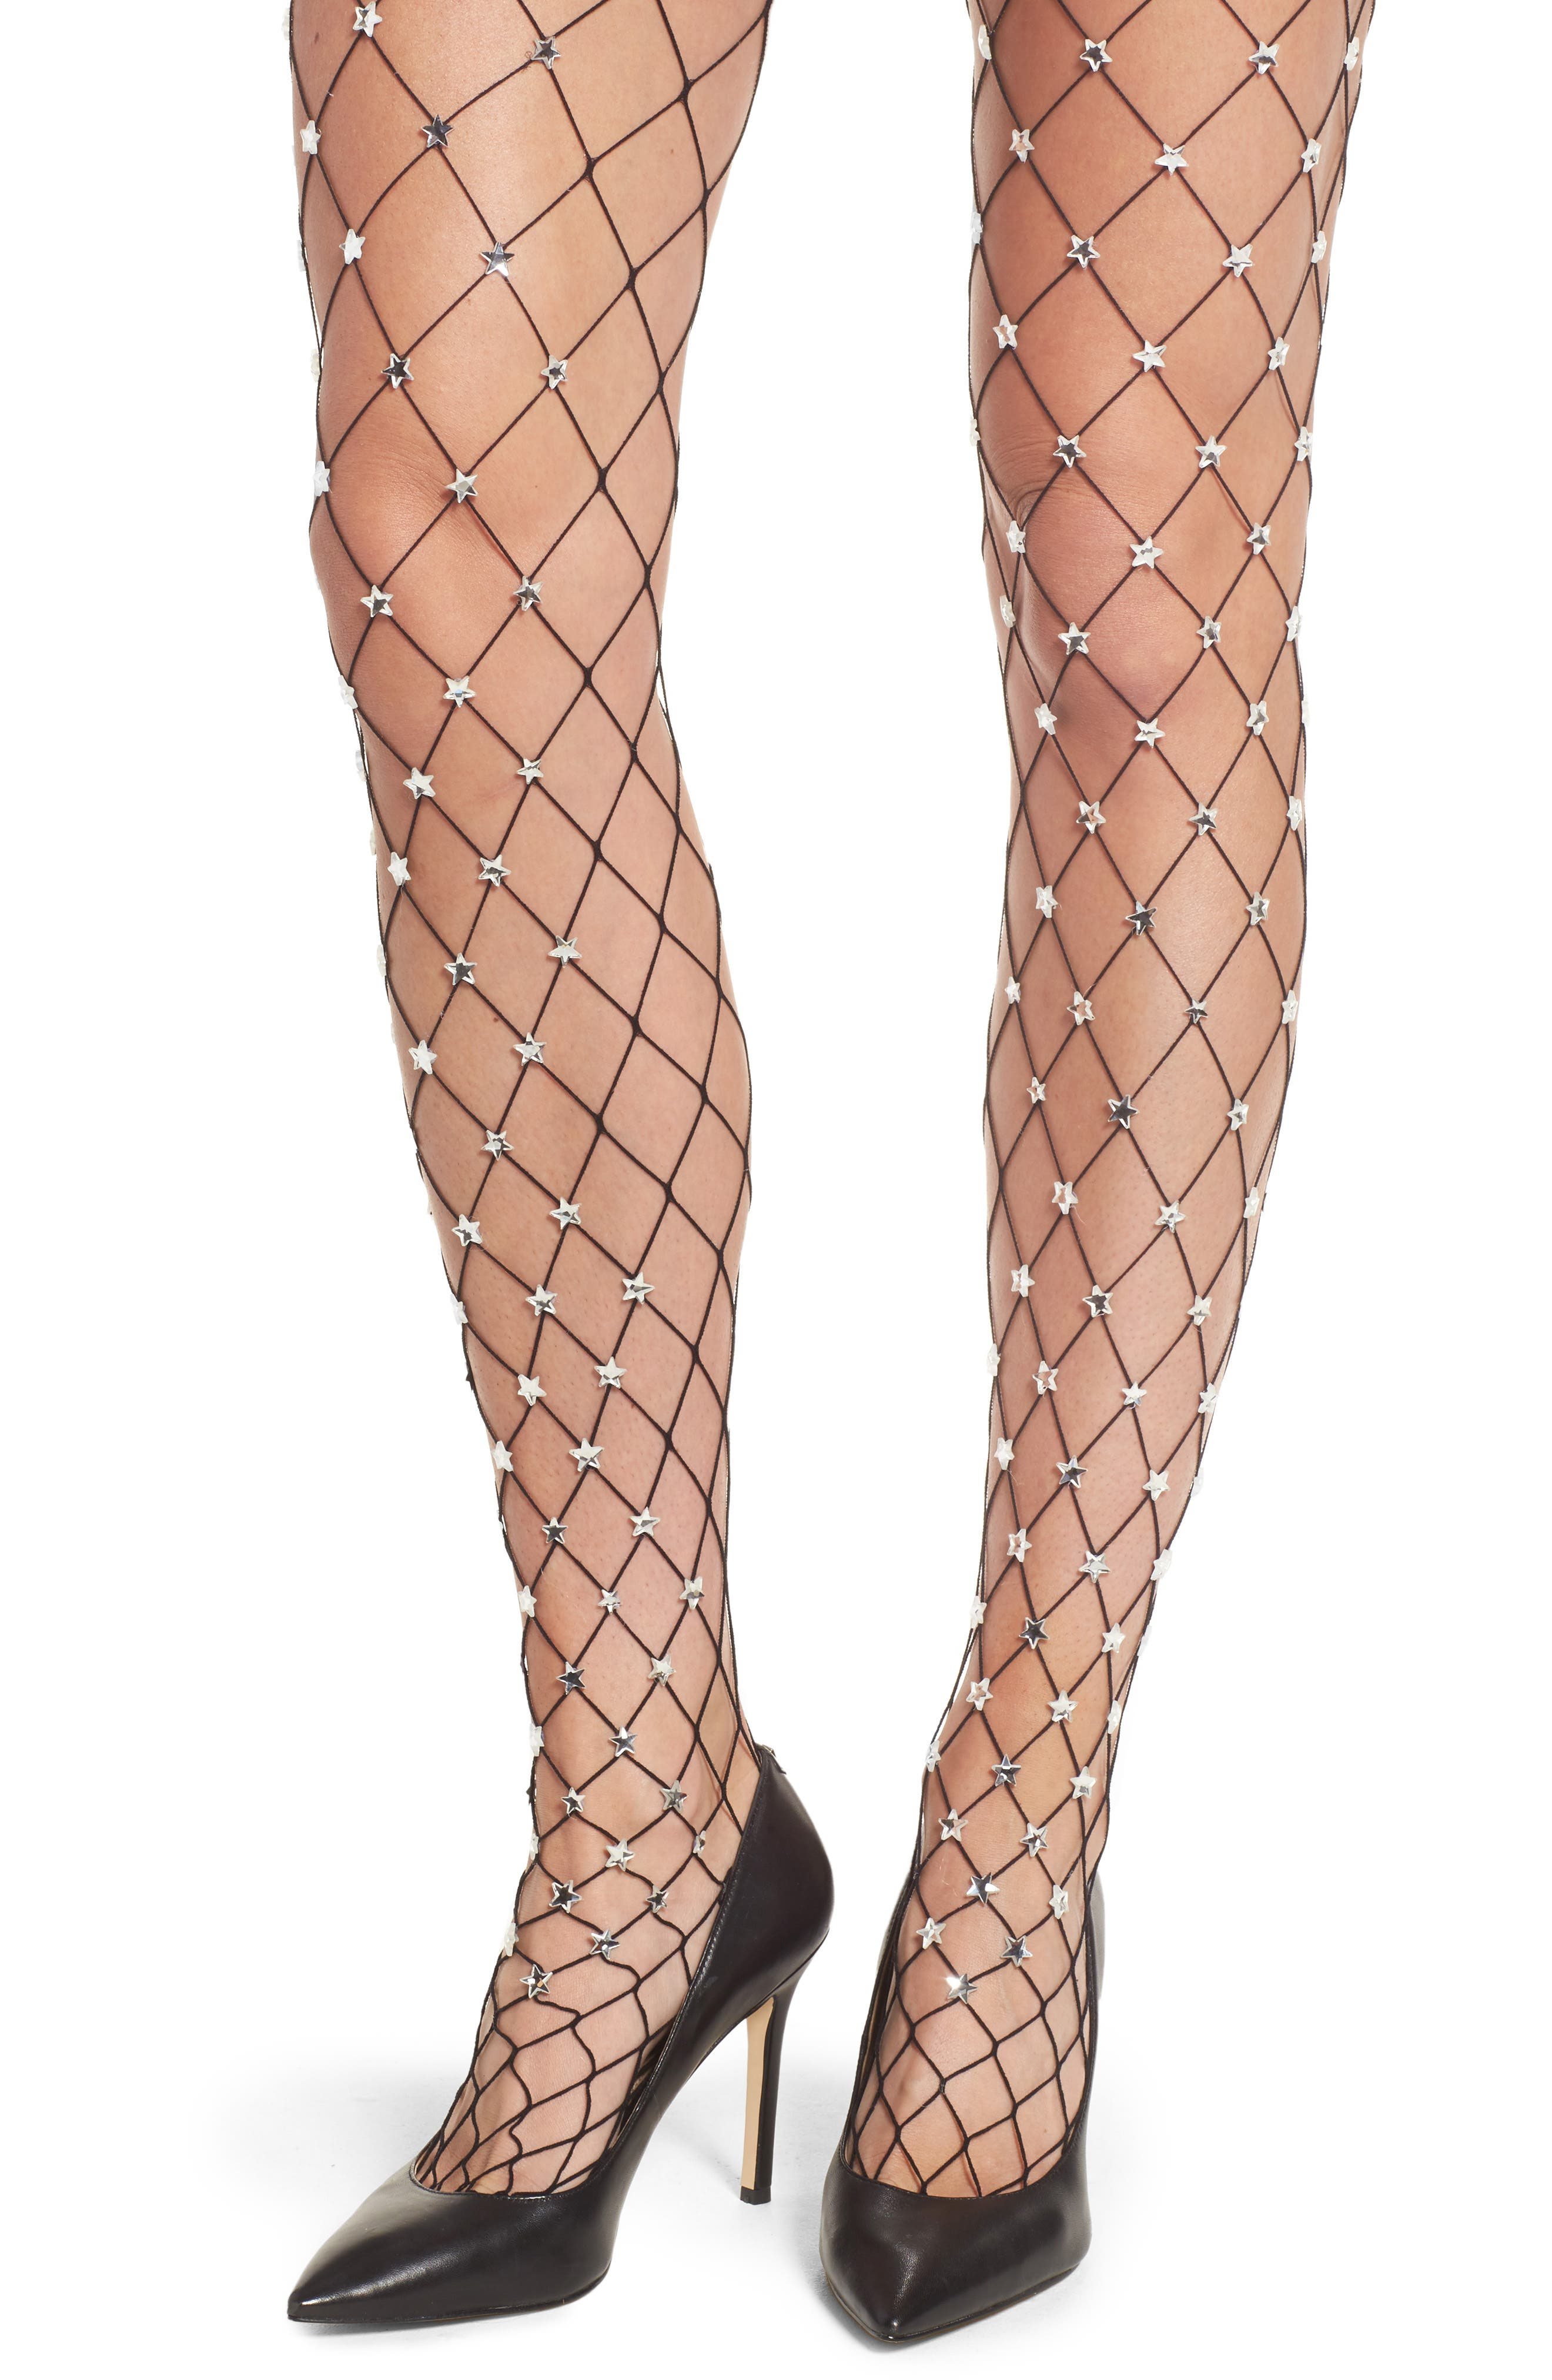 Silver Starry Fishnet Tights,                             Alternate thumbnail 2, color,                             001